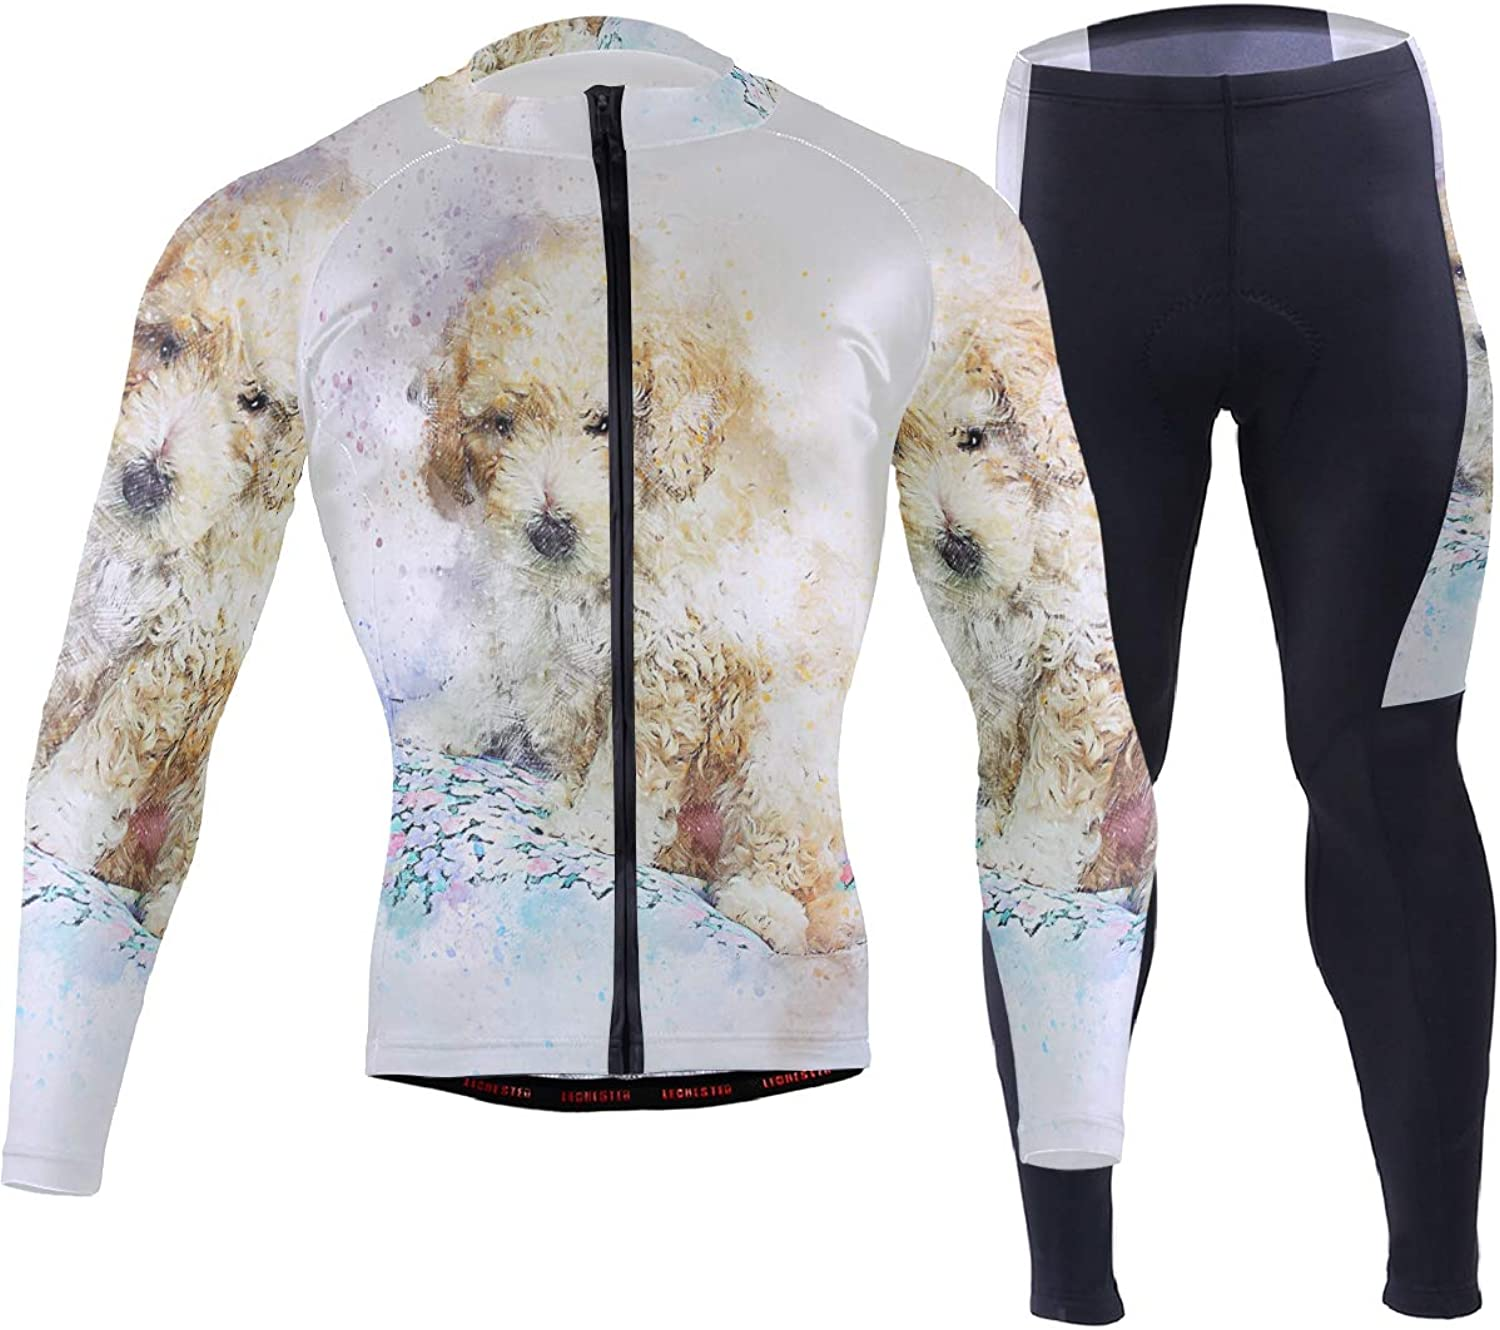 FAJRO Animal Poodle Dog Painting Sportswear Suit Bike Outfit Set Breathable Quick Dry 3D Padded Pants